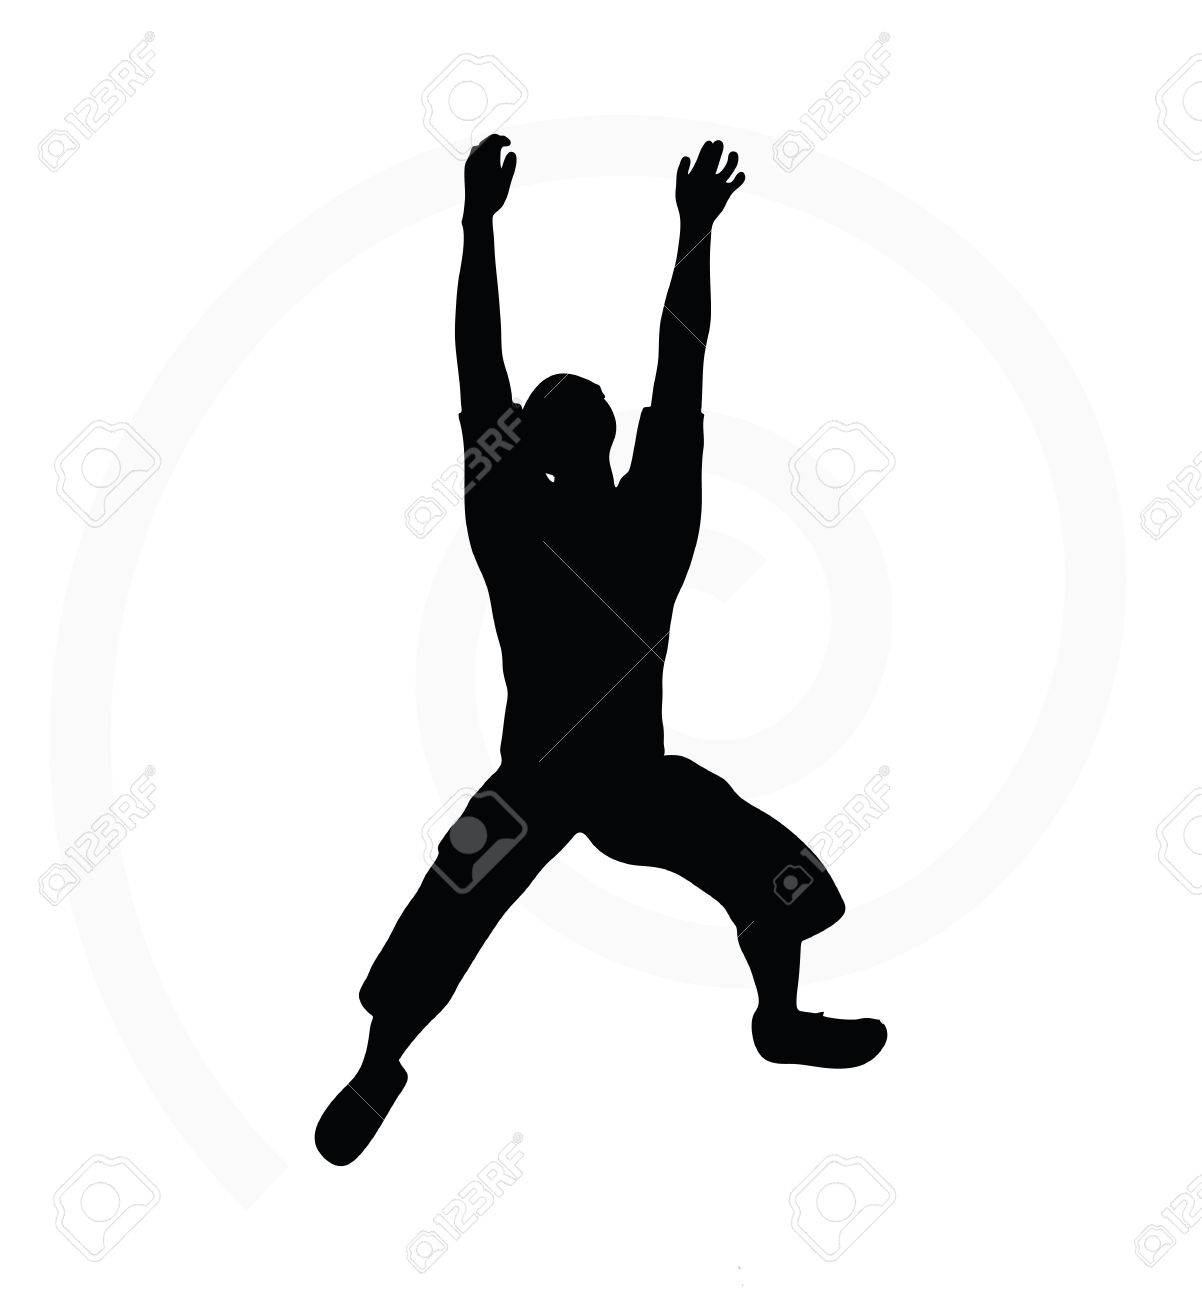 man silhouette isolated on white background in hanging pose stock